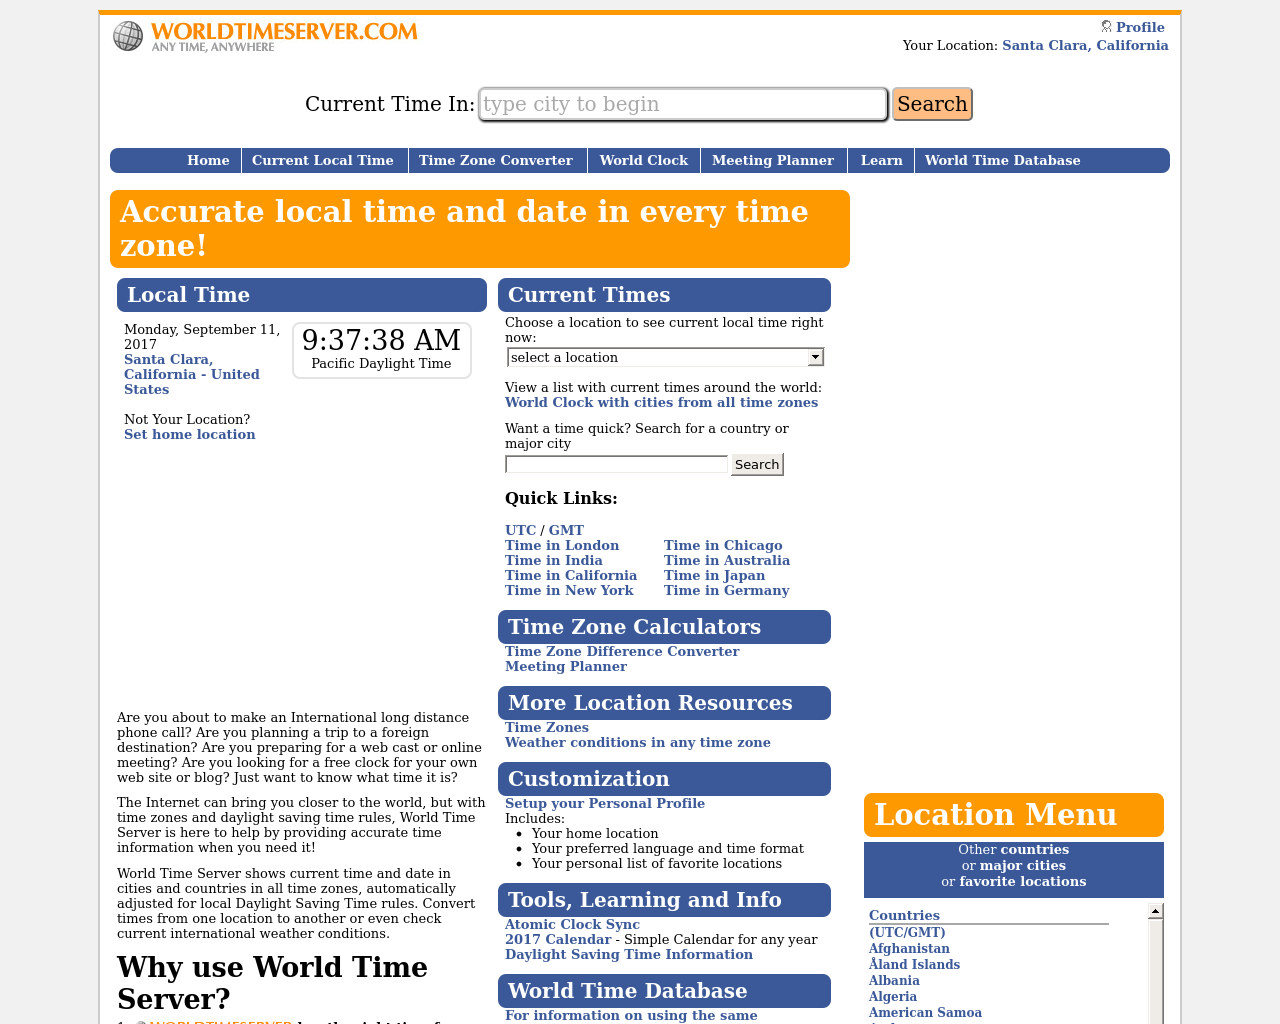 World-Time-Server-Advertising-Reviews-Pricing